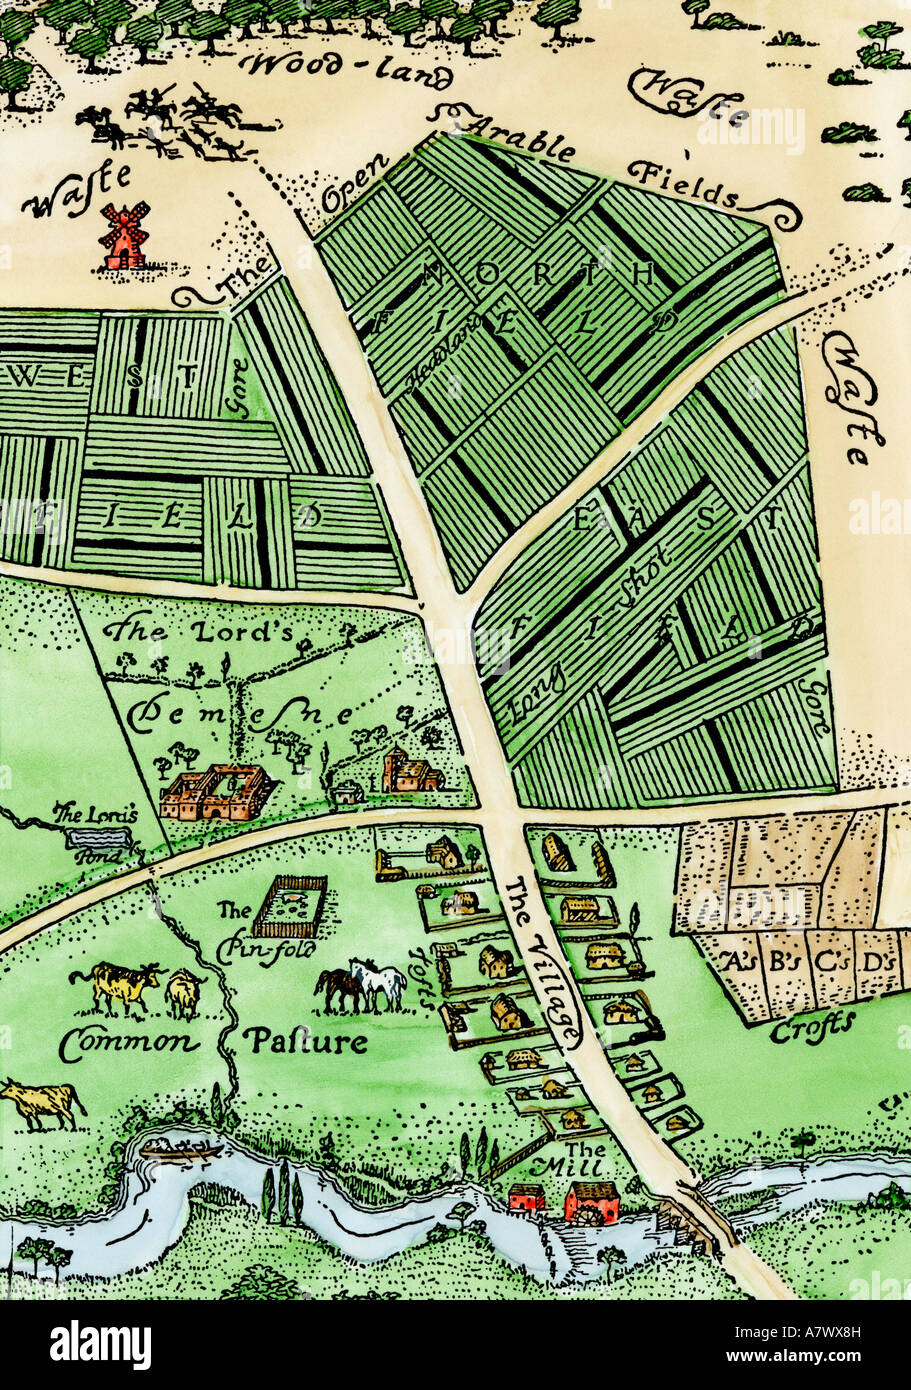 Arrangement of manor lands near a village in the Middle Ages. Hand-colored woodcut - Stock Image